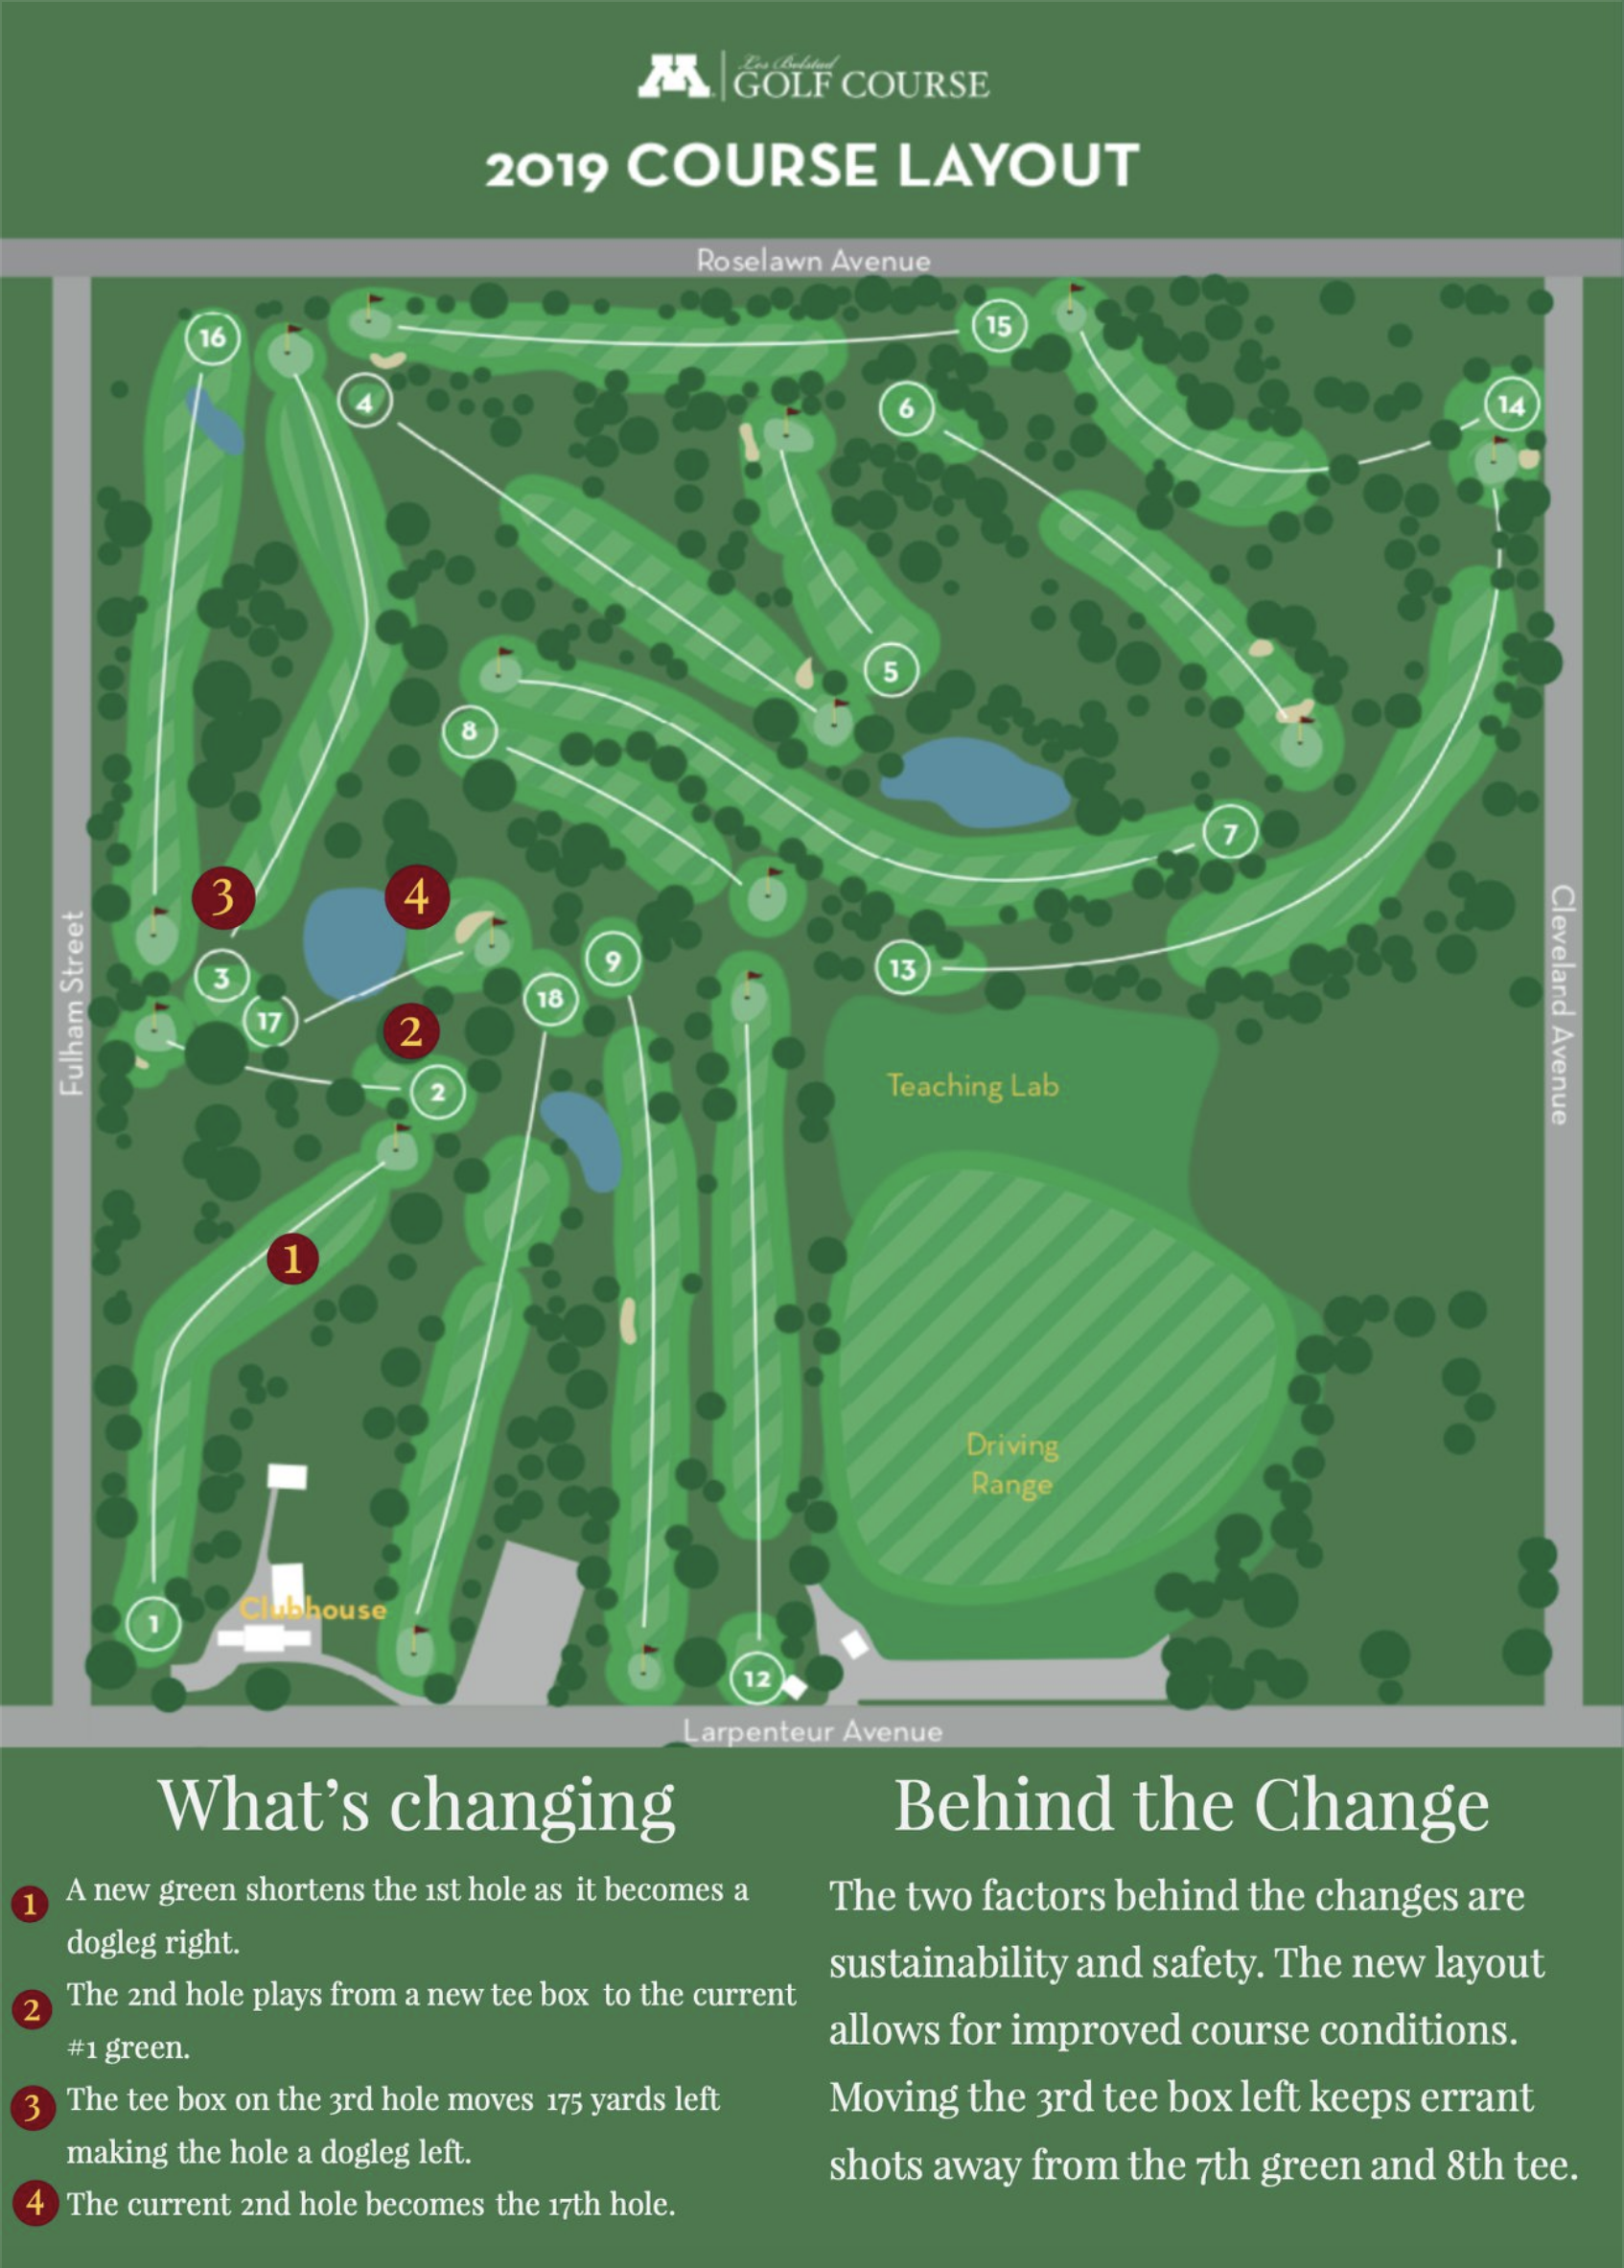 New Course Routing - Our new course routing with be opening on July 26th. This new routing will help with course sustainability and safety on the course.